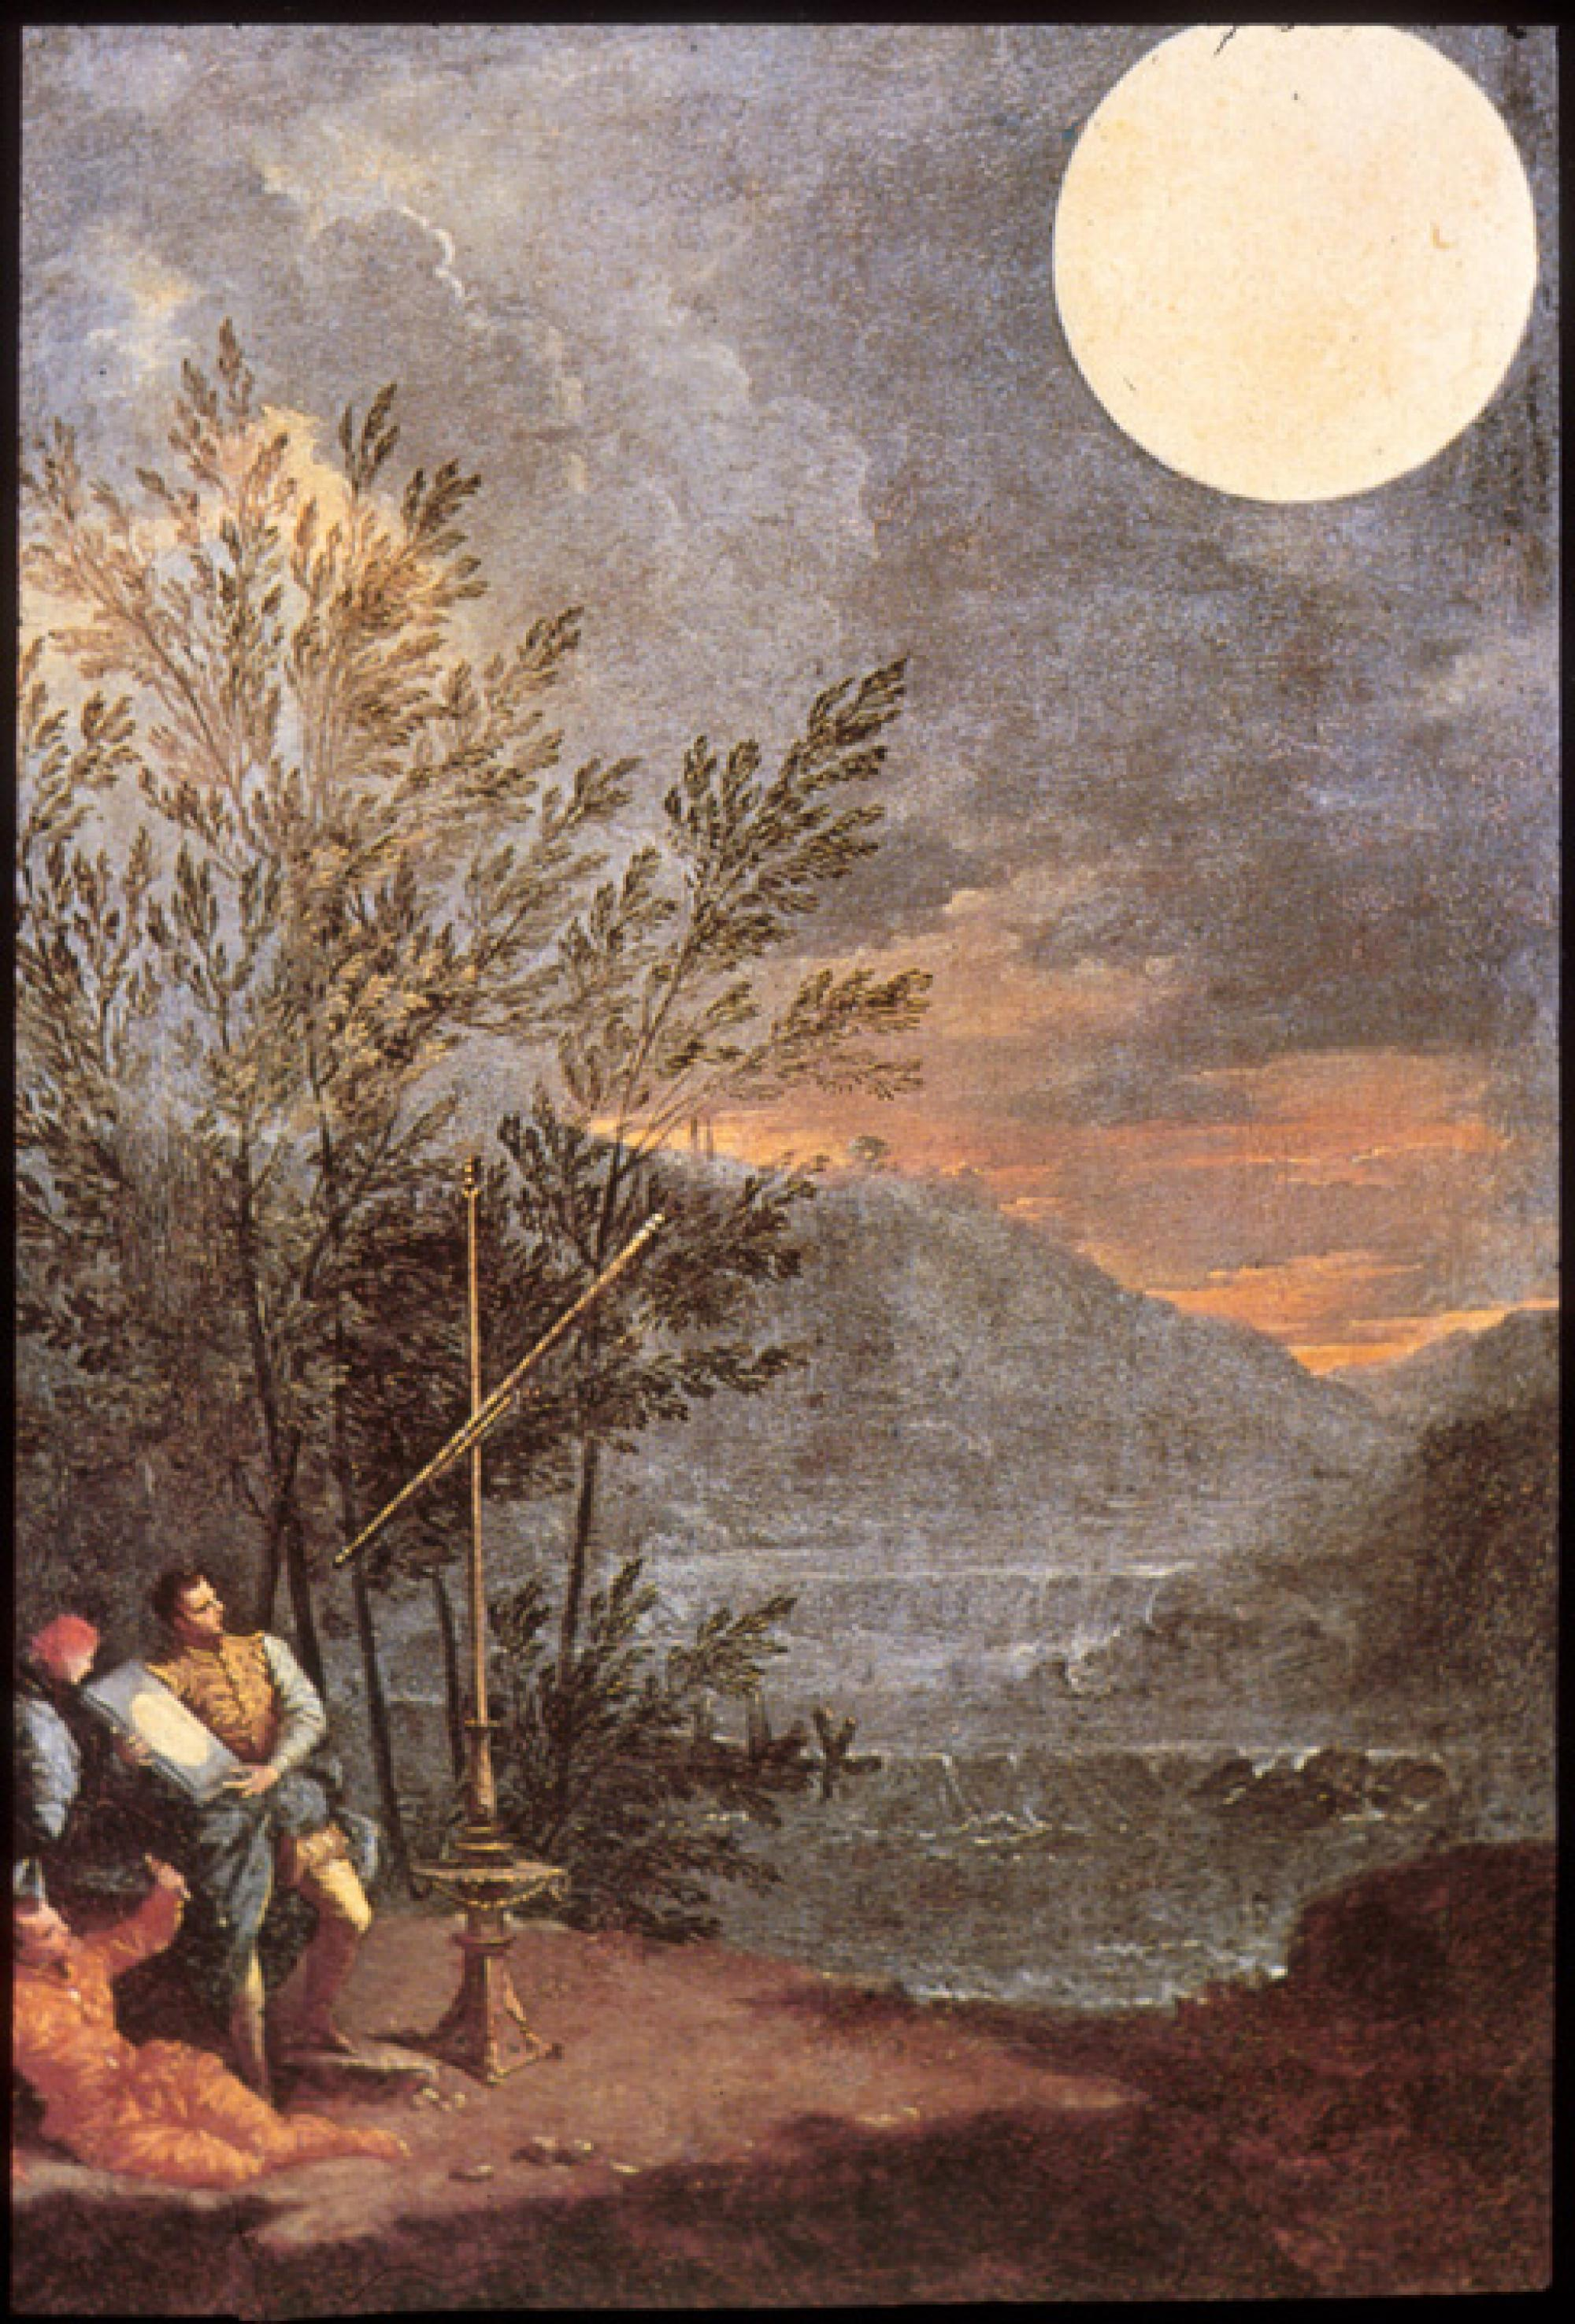 CLICK TO ENLARGE IMAGE. Italian Baroque era painter Donato Creti  painted this scene of people viewing the moon with a Galilean telescope.